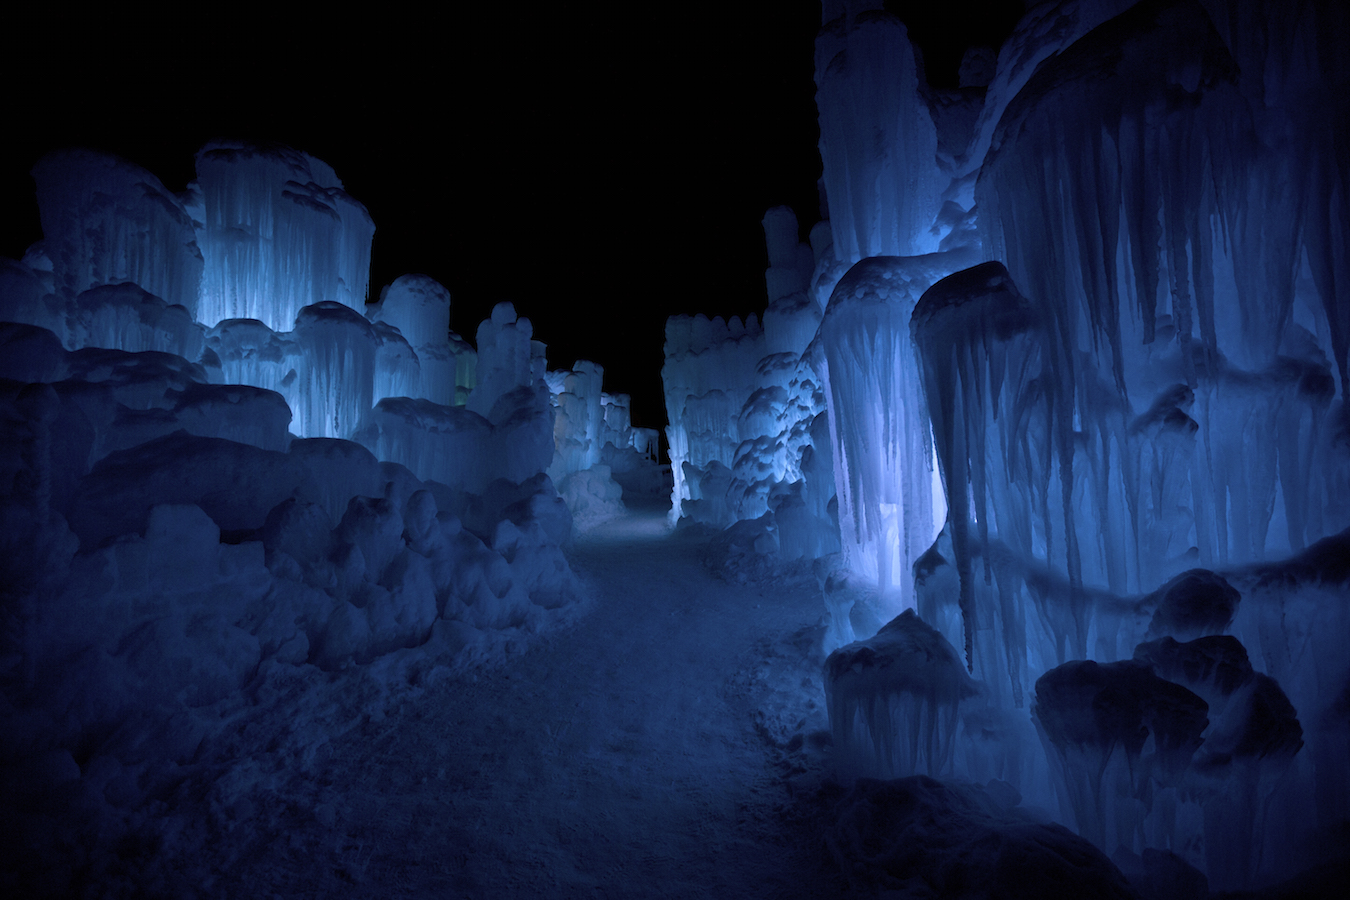 the ice castle in new hampshirethe new hampshire ice castle glows deep blue at night - Blue Castle 2016